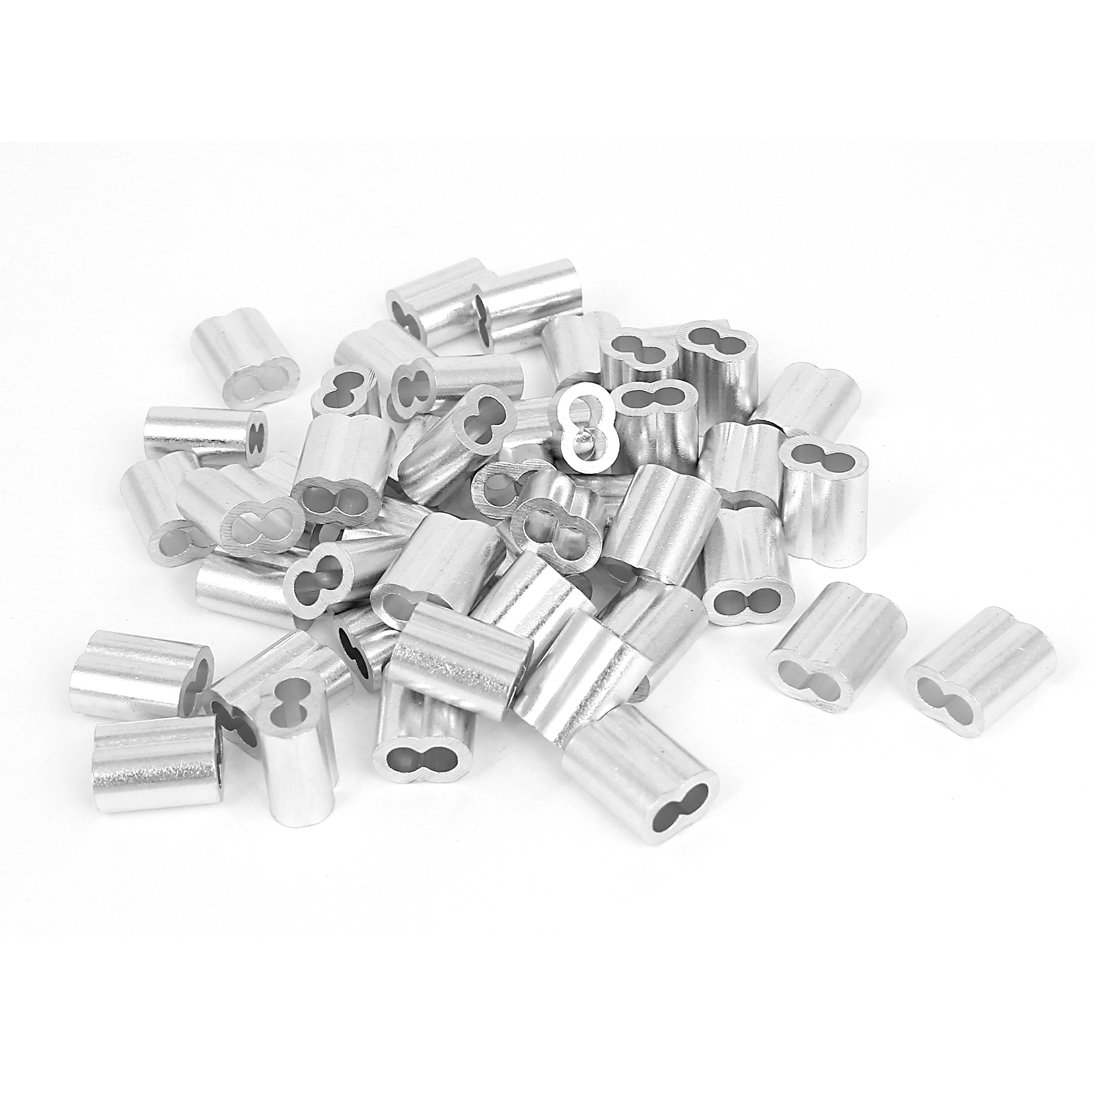 Uxcell a15060500ux0010 5/32-inch Wire Rope Aluminum Sleeves Clip Fittings Cable Crimps 50pcs (Pack of 50)